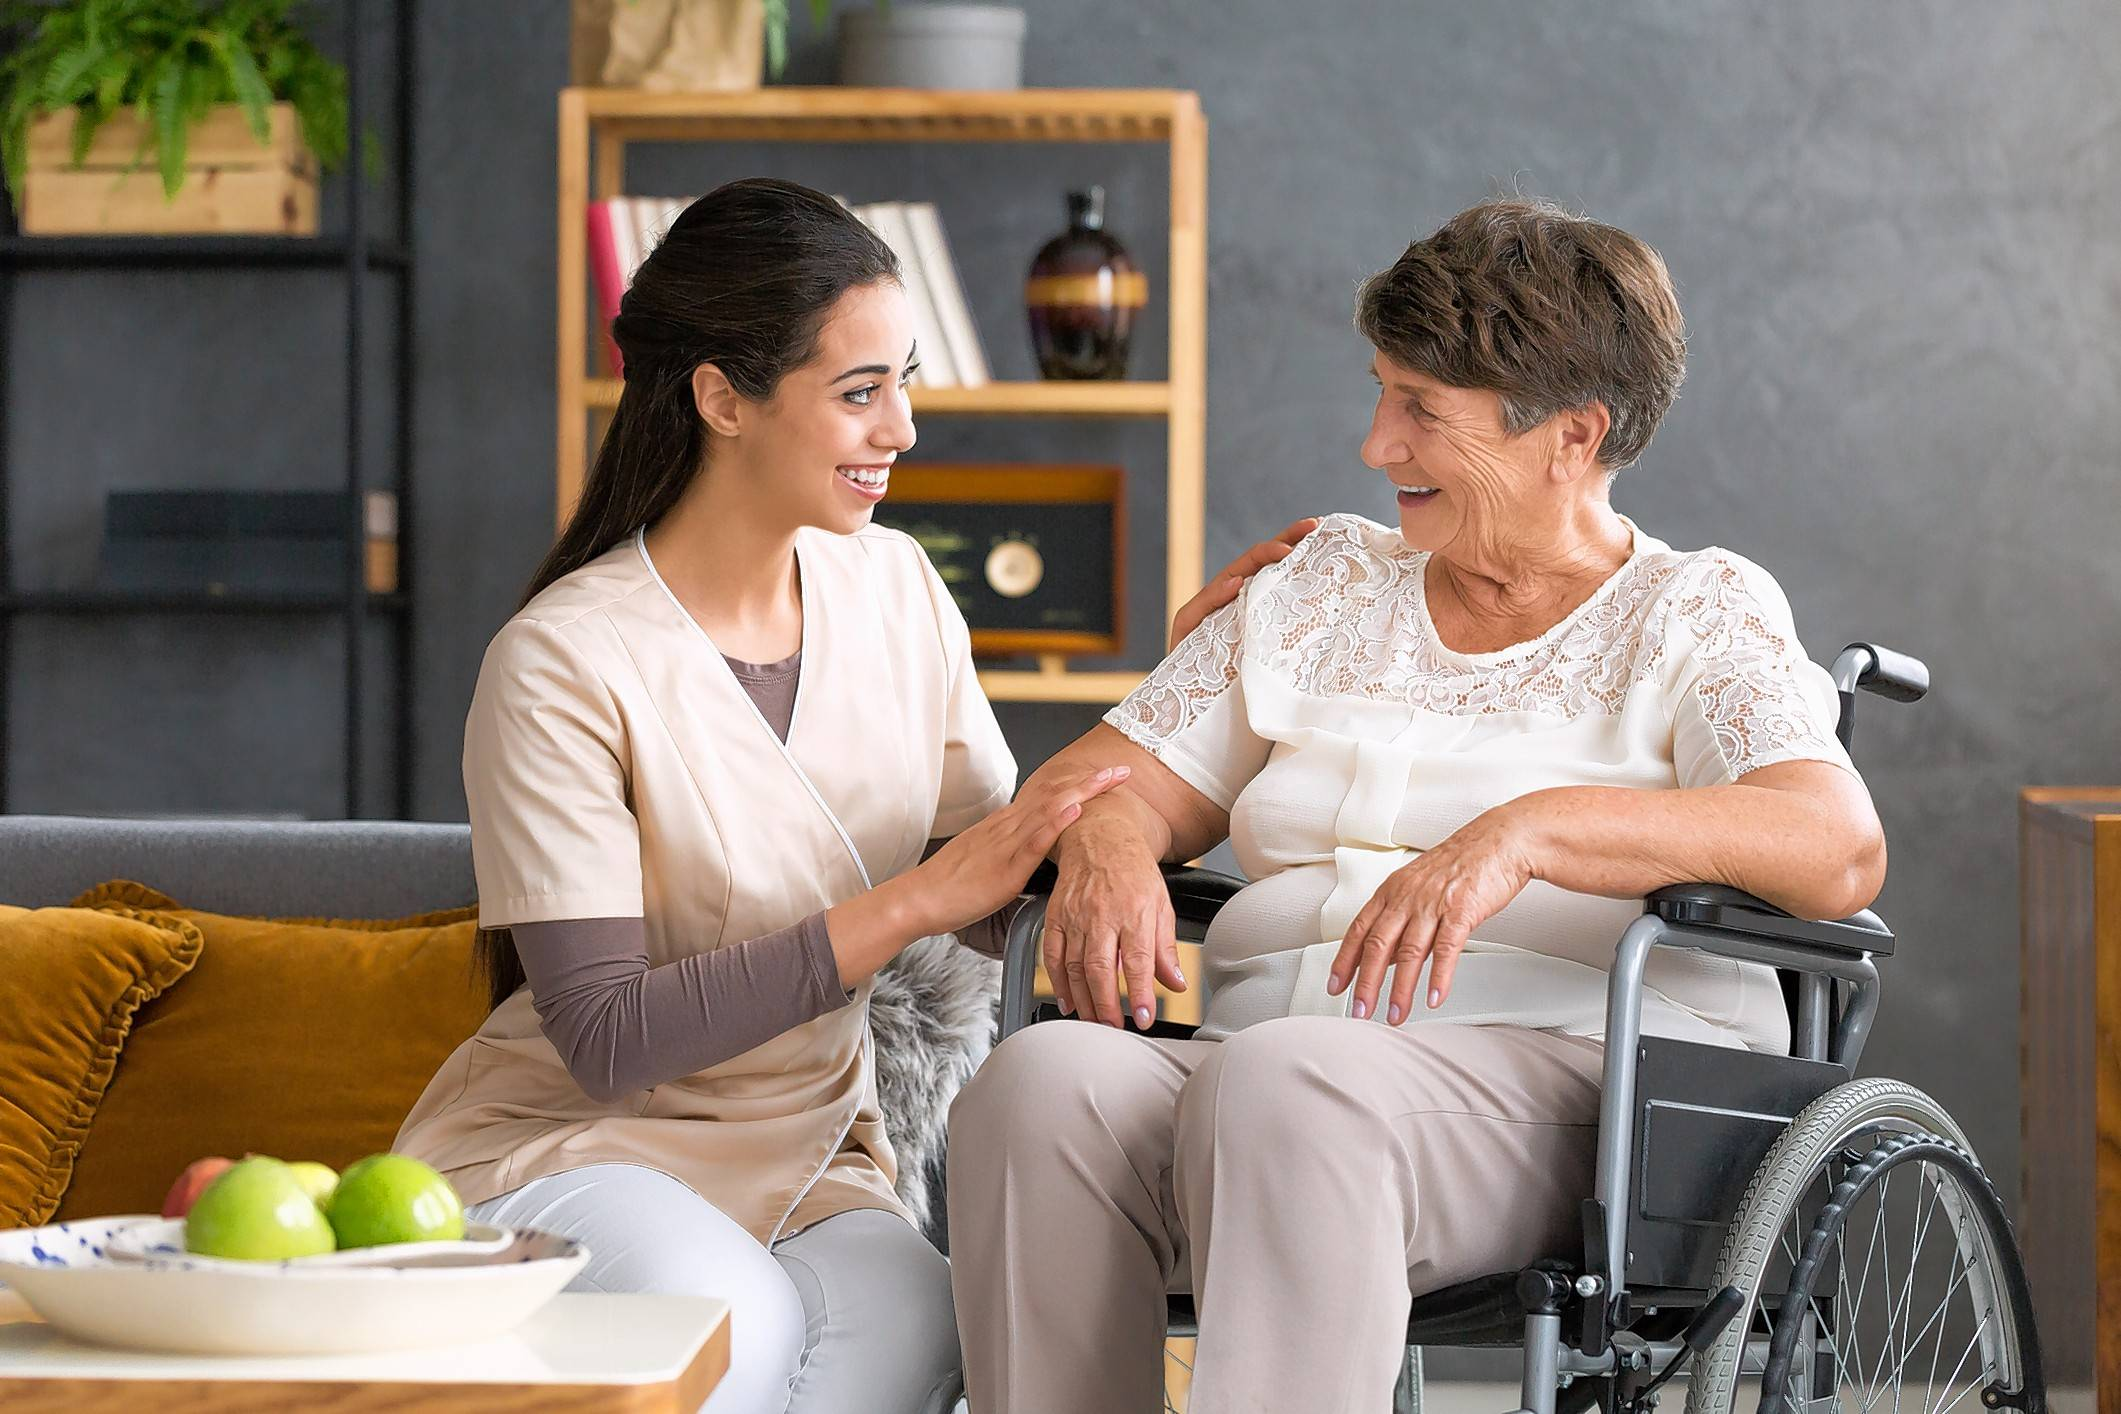 Older adults who may need help with daily living would benefit by living in an assisted living community, where they can get the help they need and still live as independently as possible.